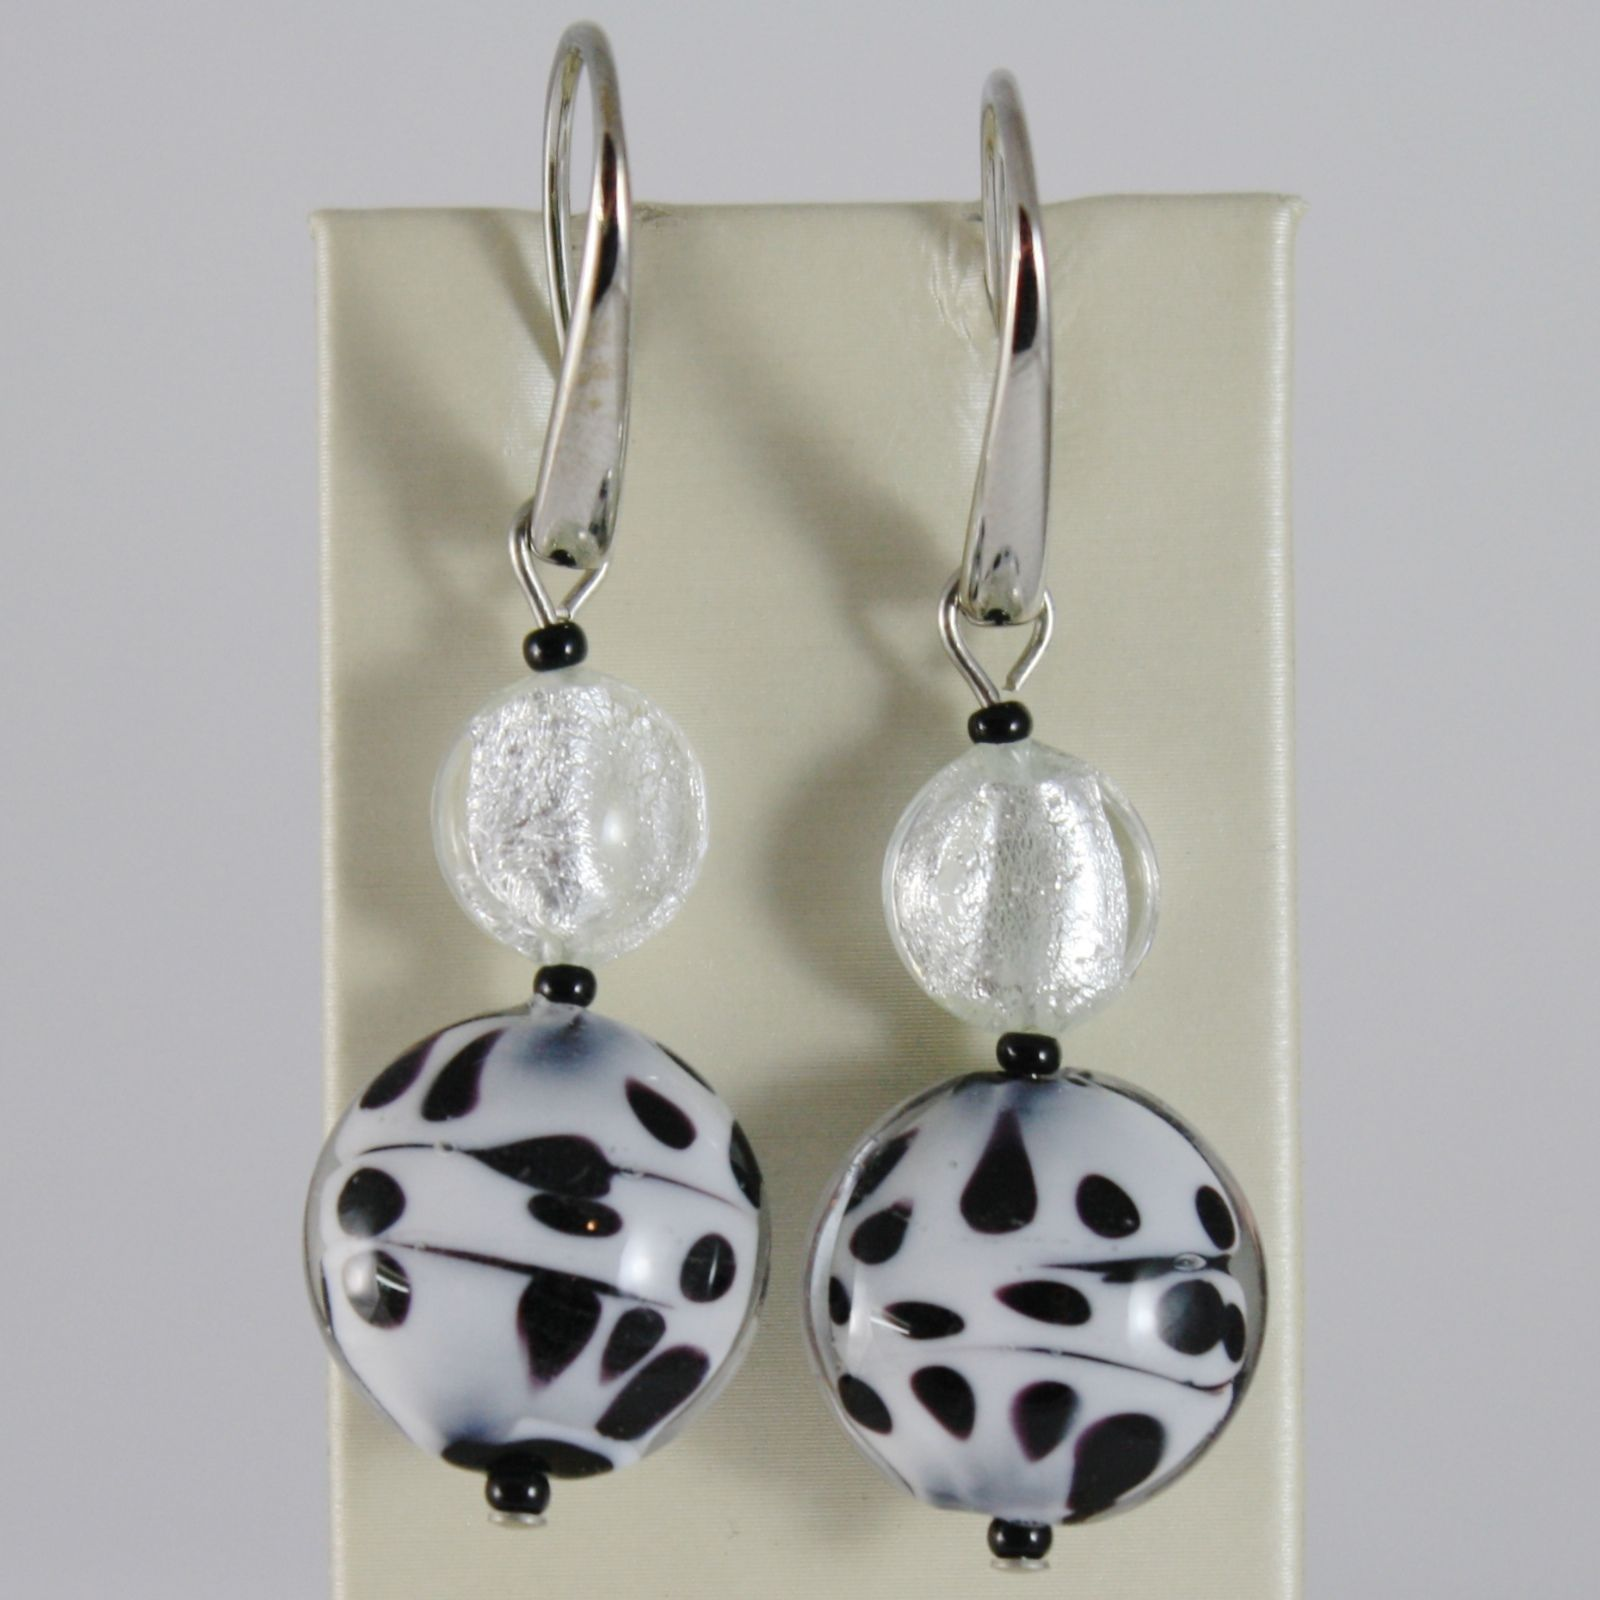 ANTICA MURRINA VENEZIA DISCS PENDANT 5 CM EARRINGS BLACK & WHITE POIS